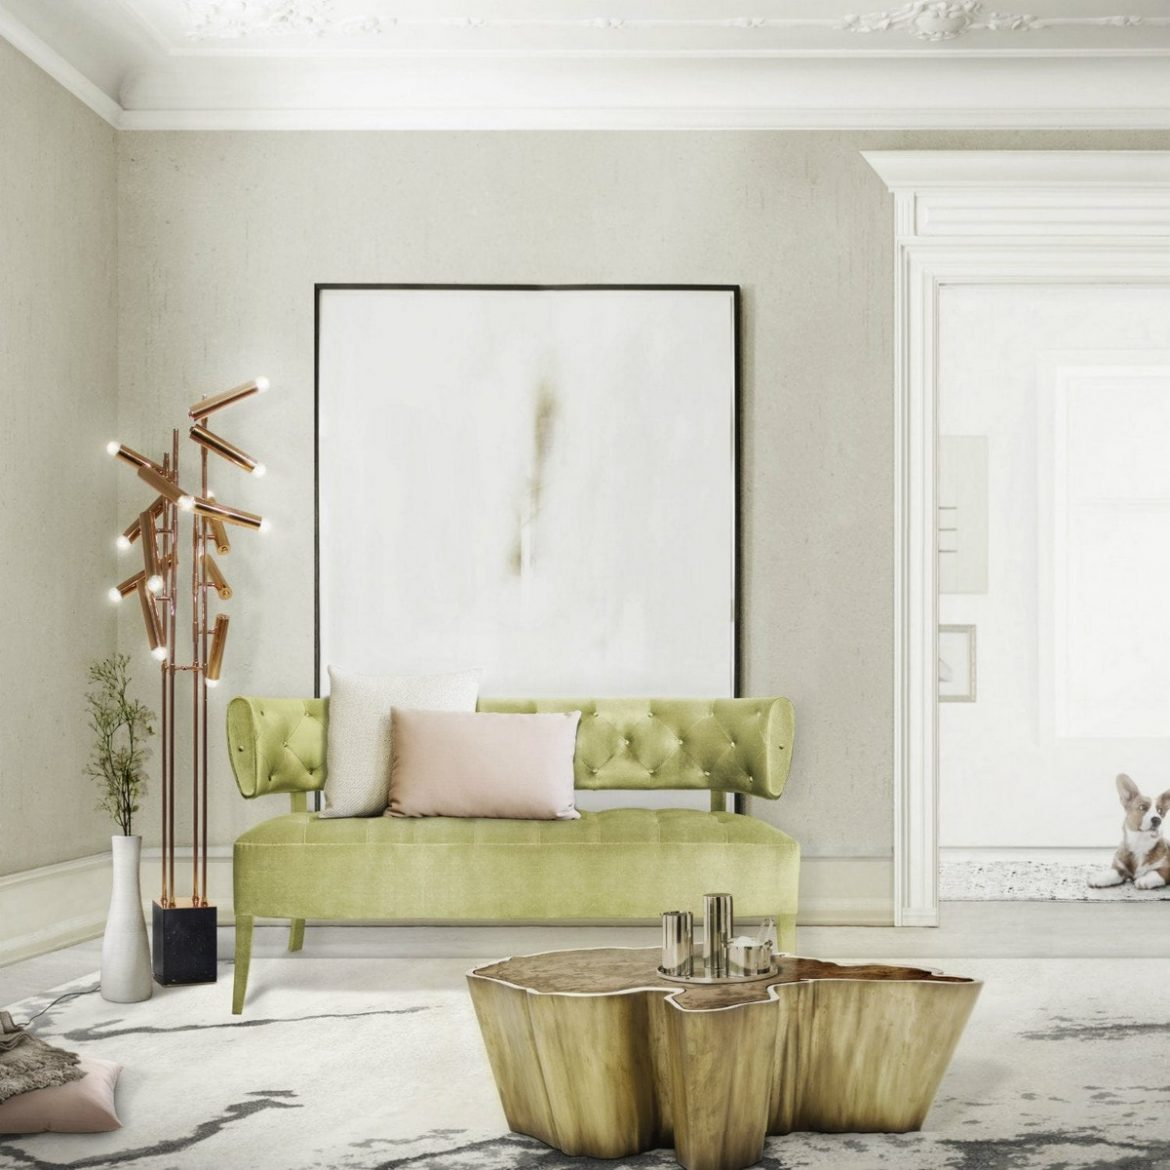 center tables The Most Exquisite Center Tables For Your Home Decor sequoia